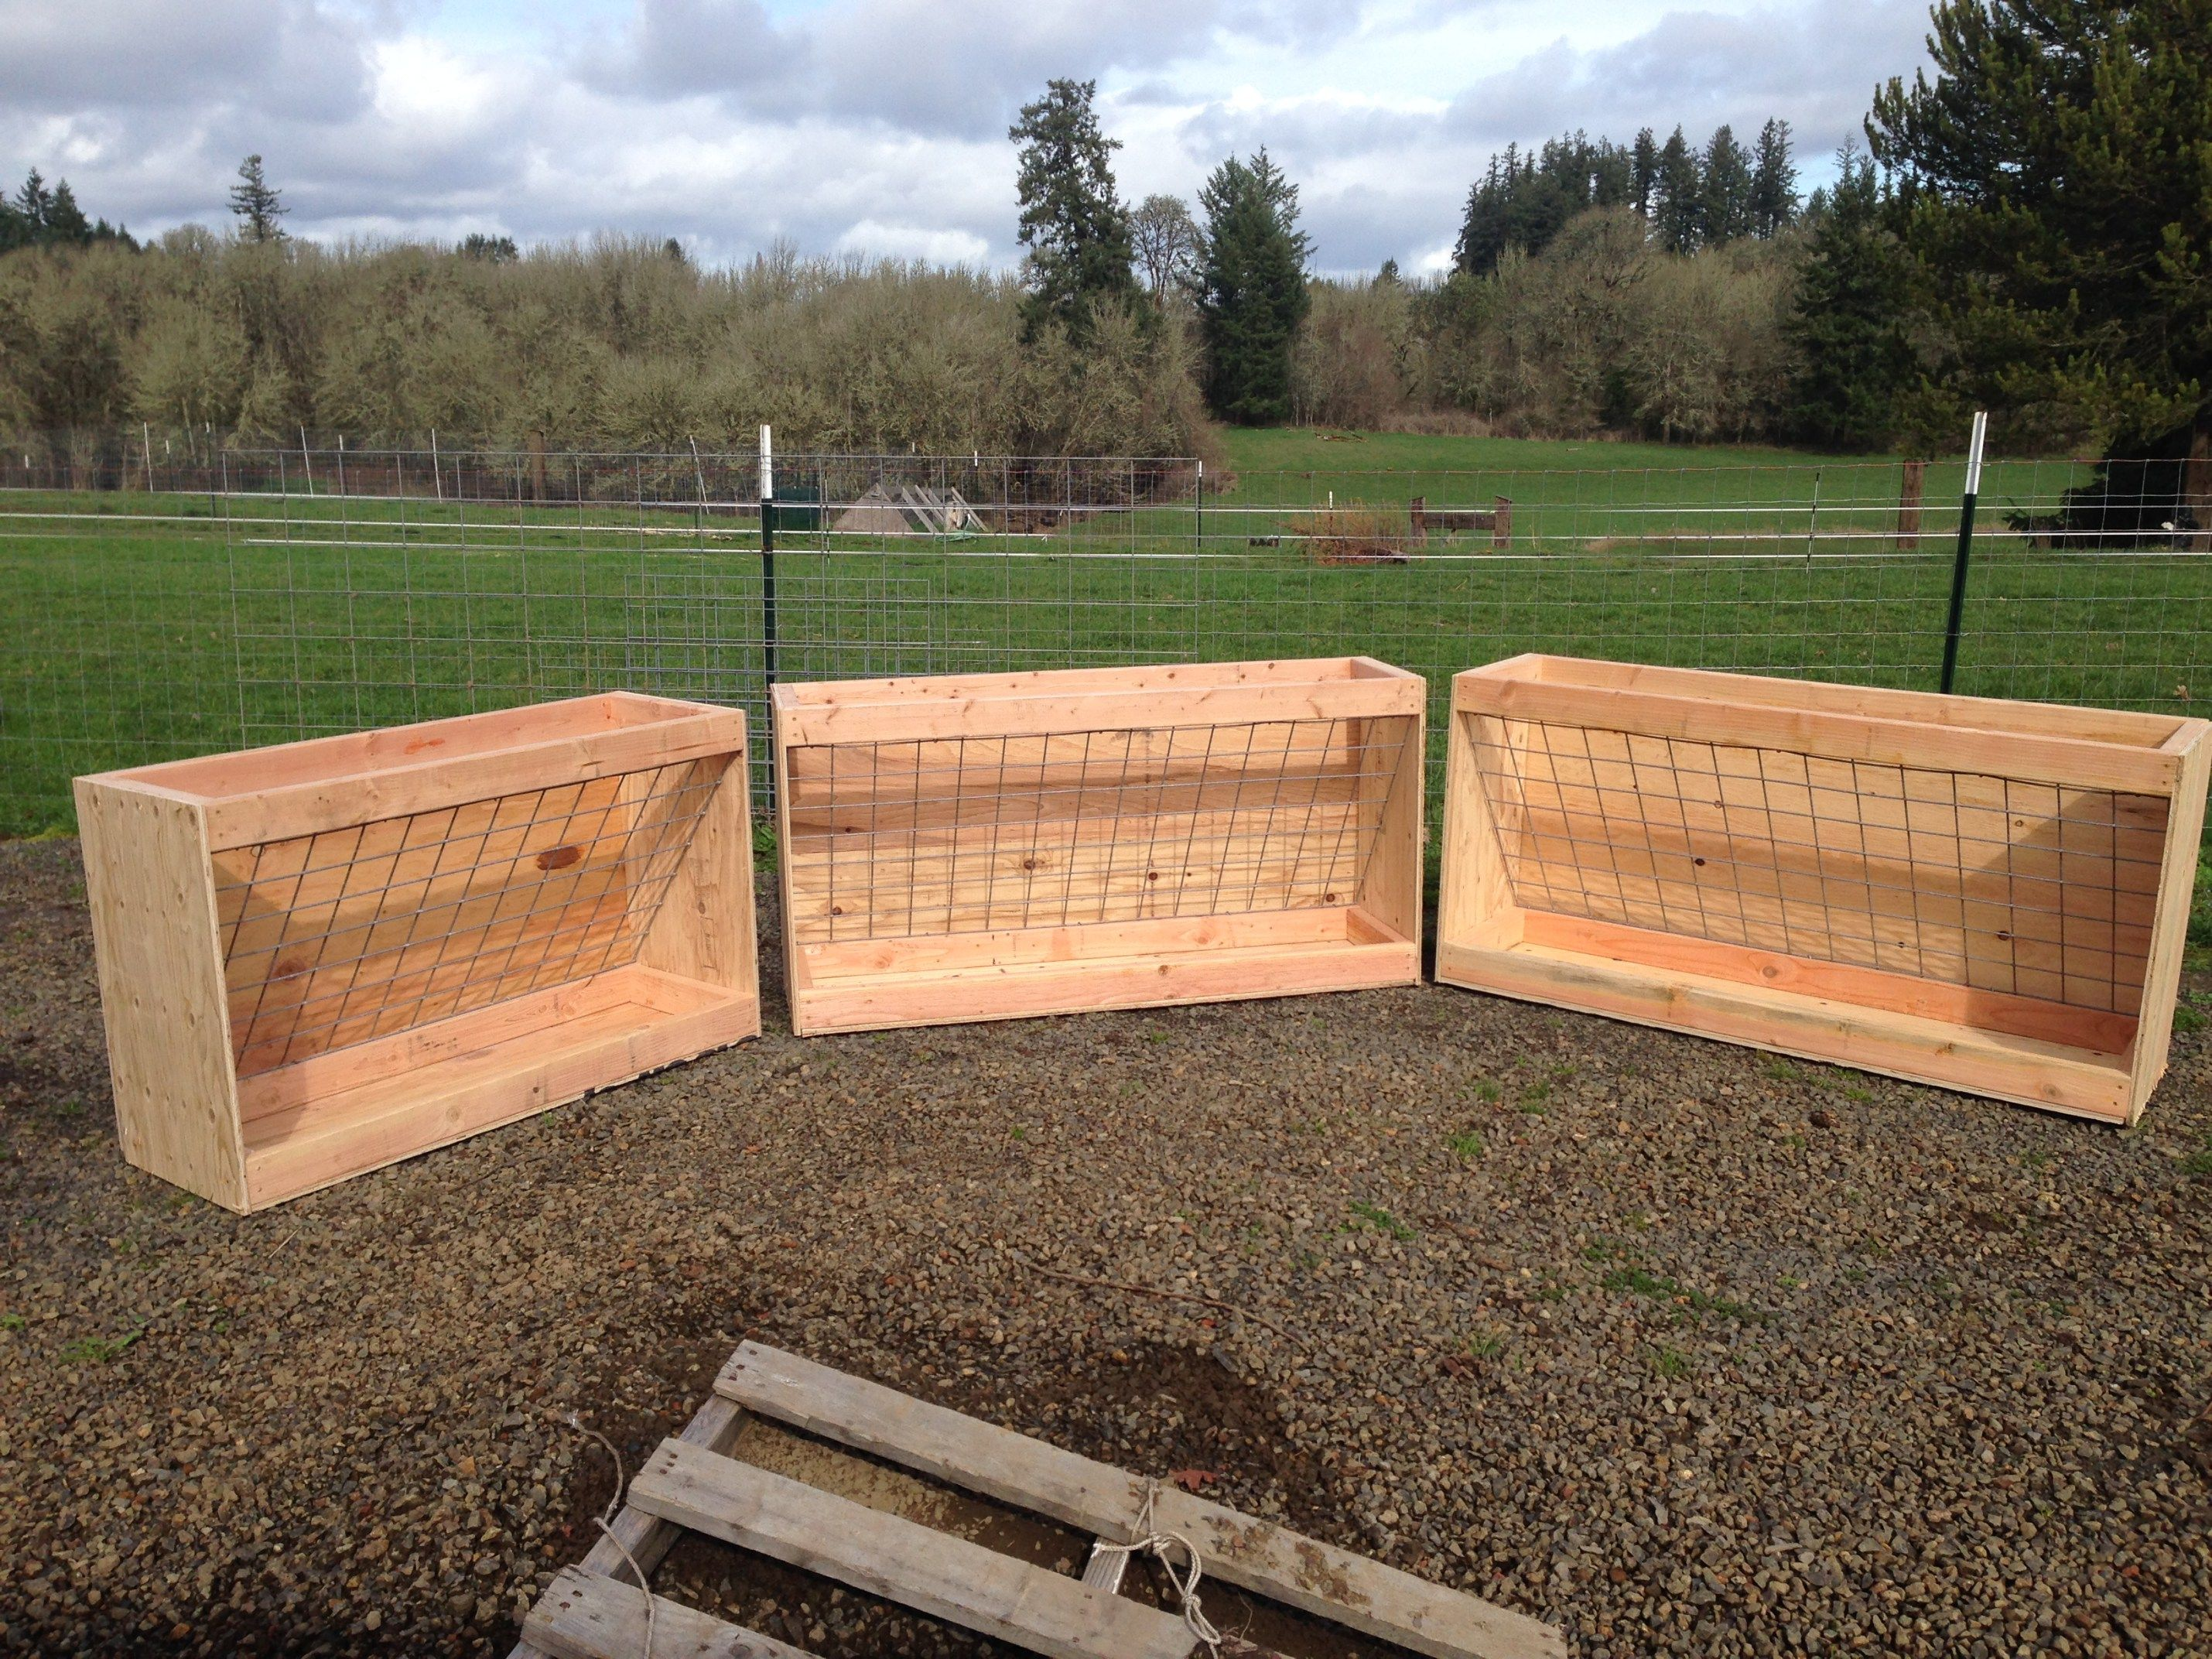 racks feeder feeders experienced grain goat affordable quality hay large horse livestock sydell sheep for mangers sale